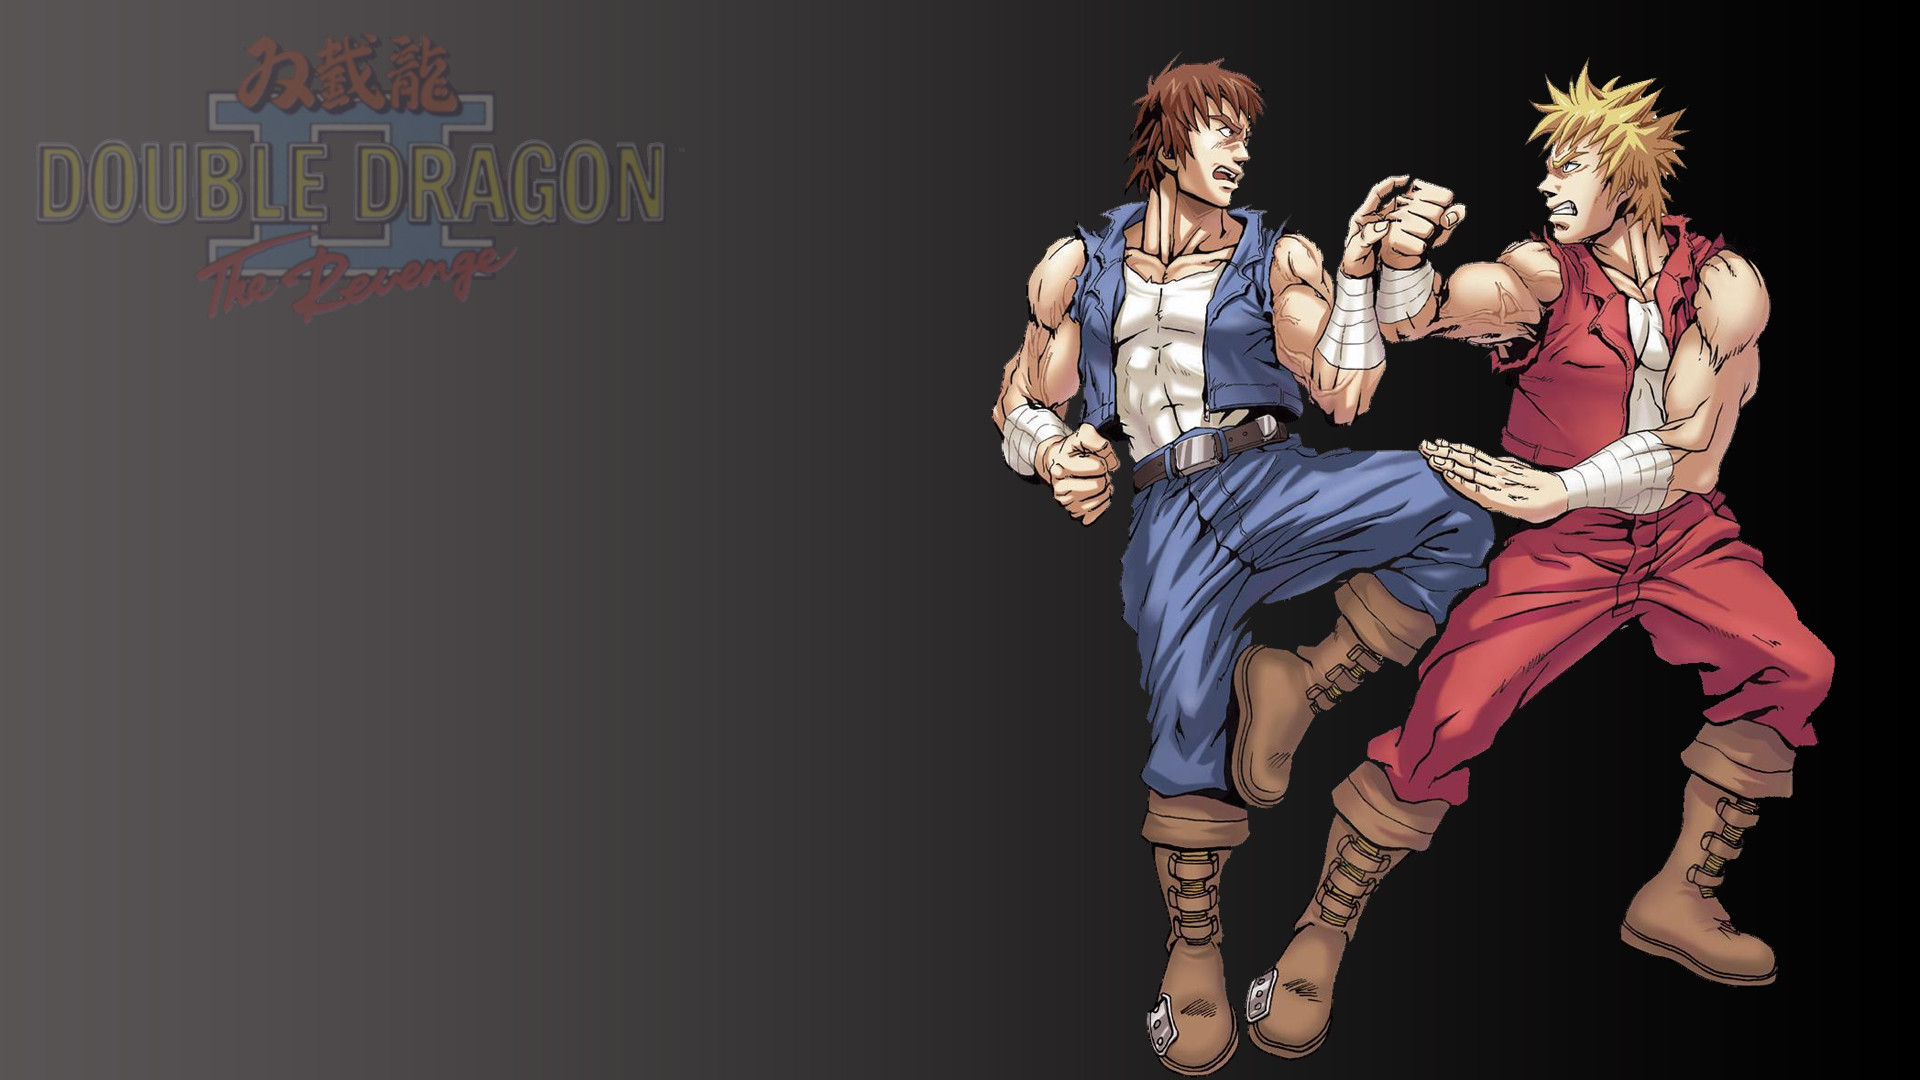 Double Dragon Wallpaper 72 Images